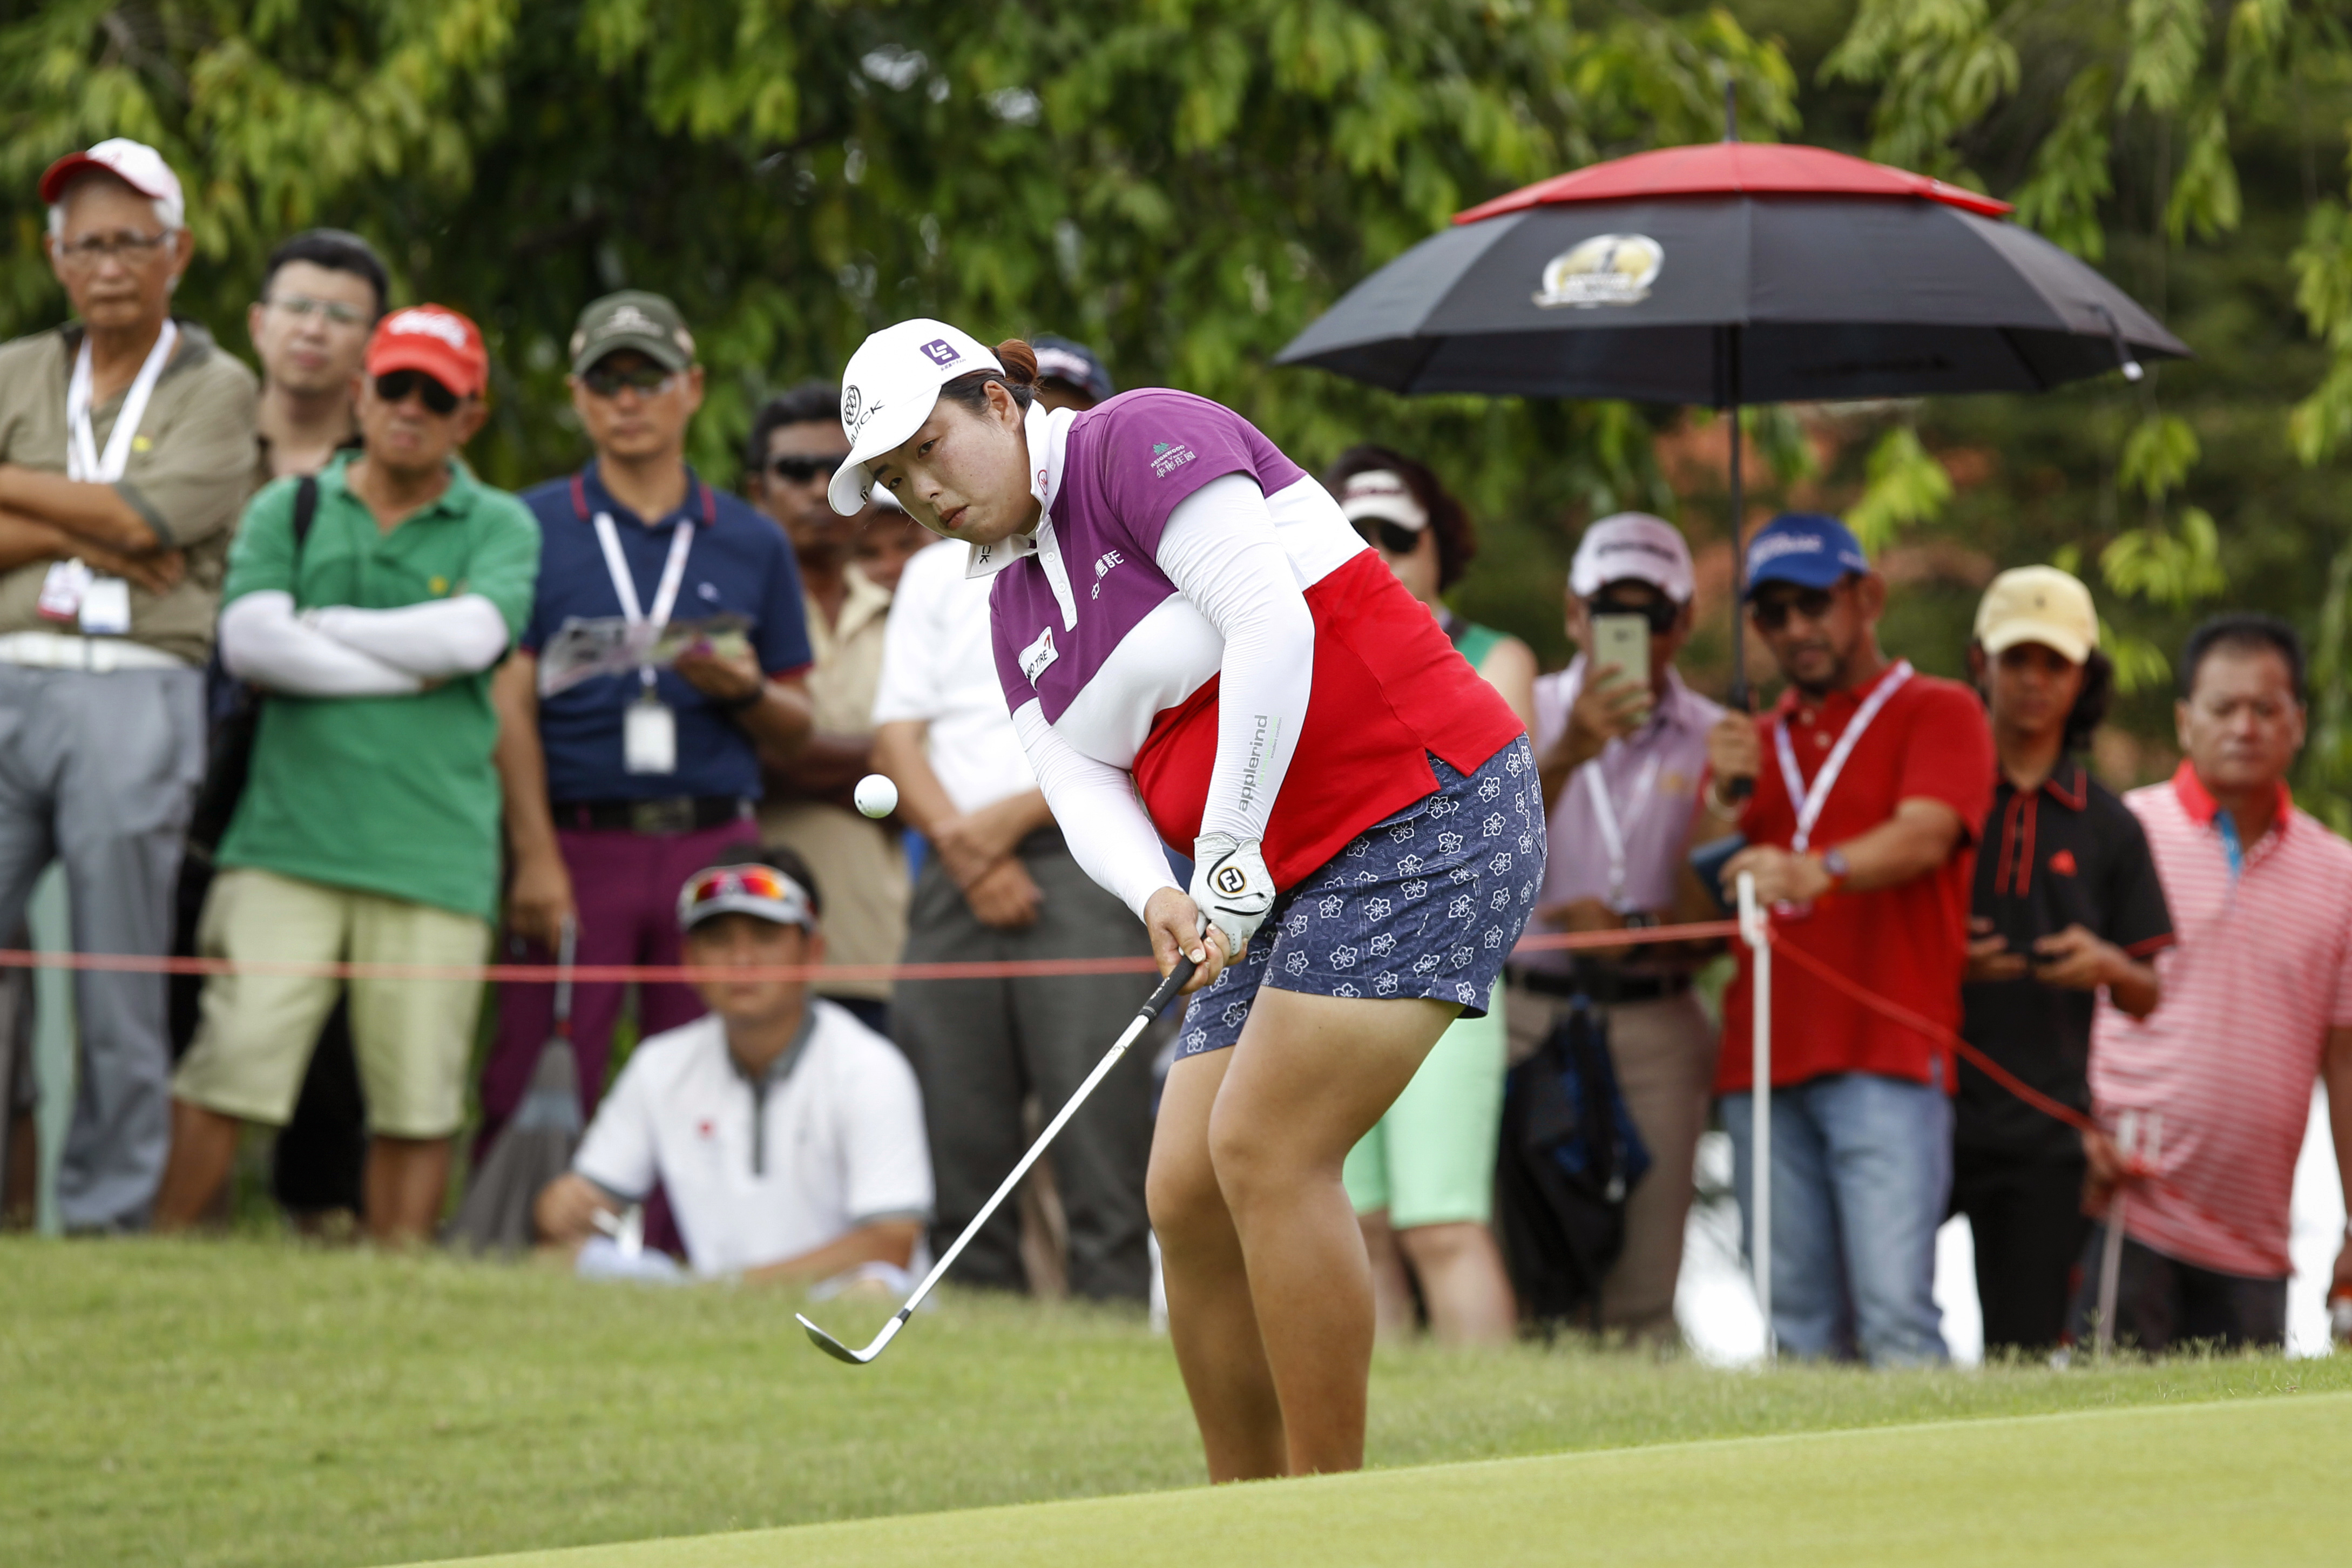 Shanshan Feng of China eyes the ball as she chips on the ninth green during the final round of the LPGA golf tournament at Tournament Players Club (TPC) in Kuala Lumpur, Malaysia, Sunday, Oct. 30, 2016. (AP Photo/Joshua Paul)